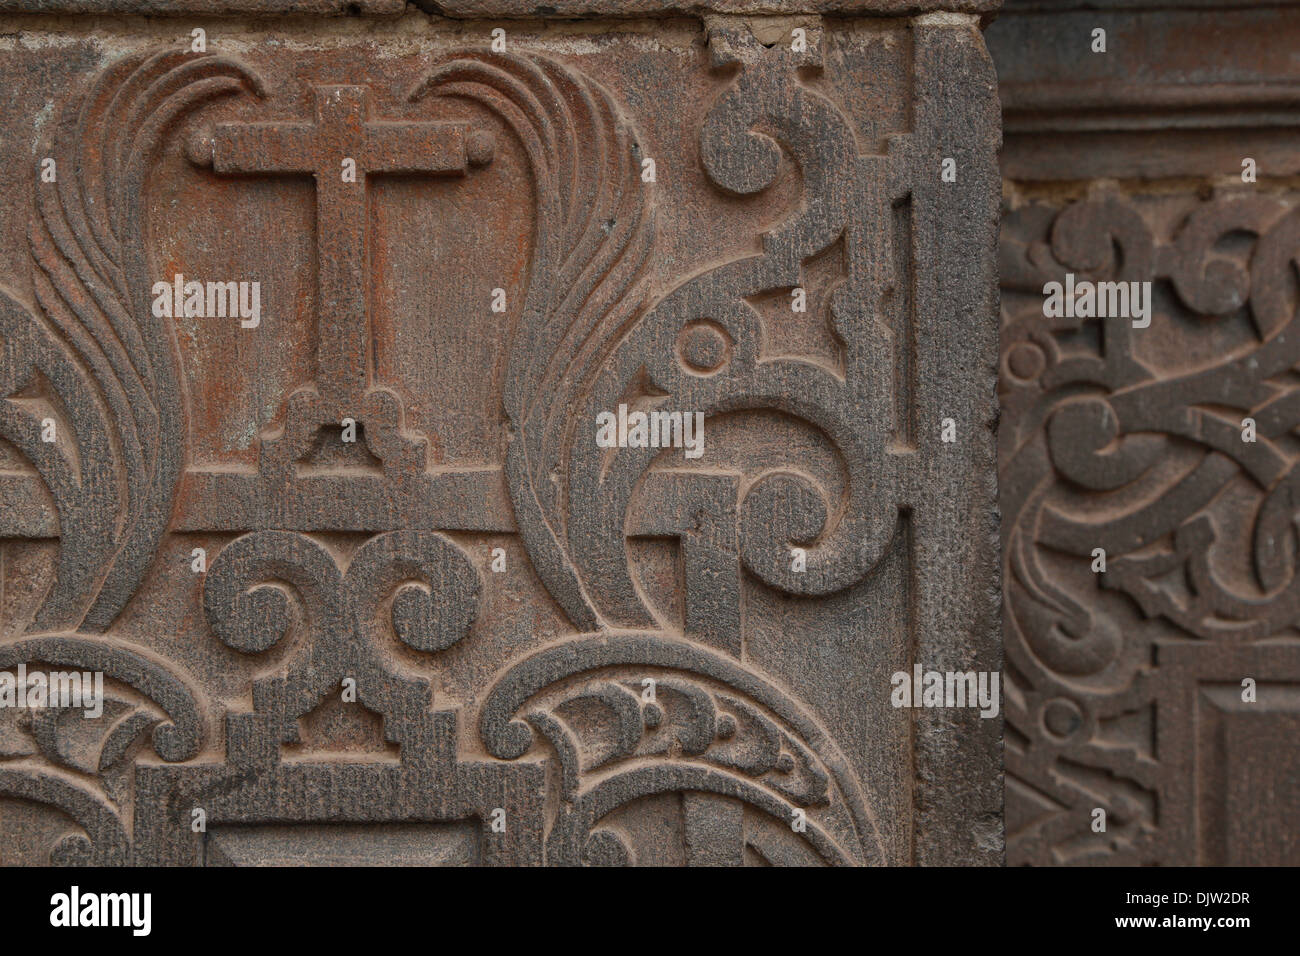 Detail of a the wall of Iglesia de la Compania de Jesus church in Plaza de Armas, Cuzco, Peru. - Stock Image